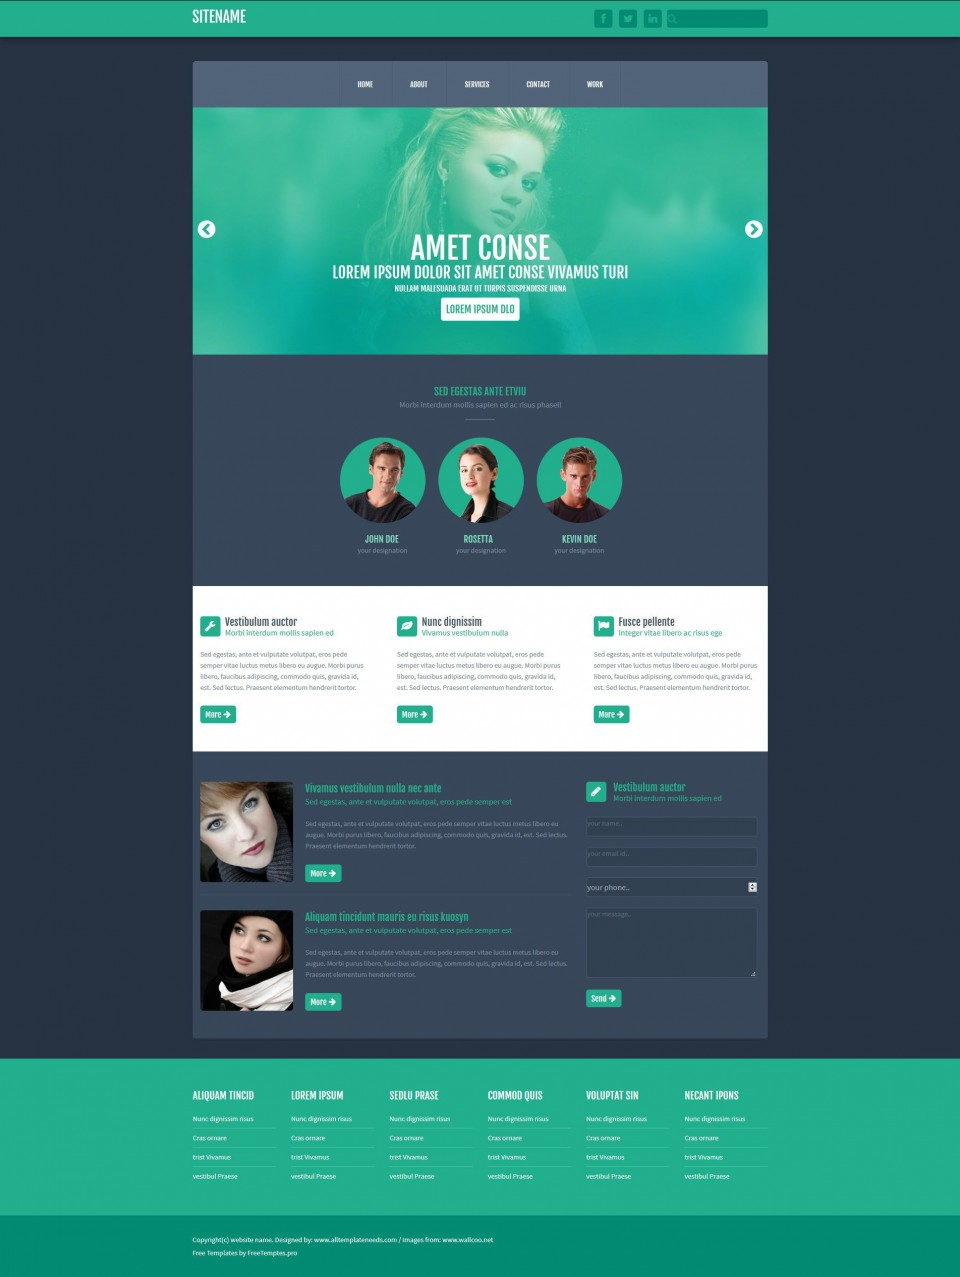 004 Awesome One Page Website Template Free Download Html5 High Definition  Parallax960